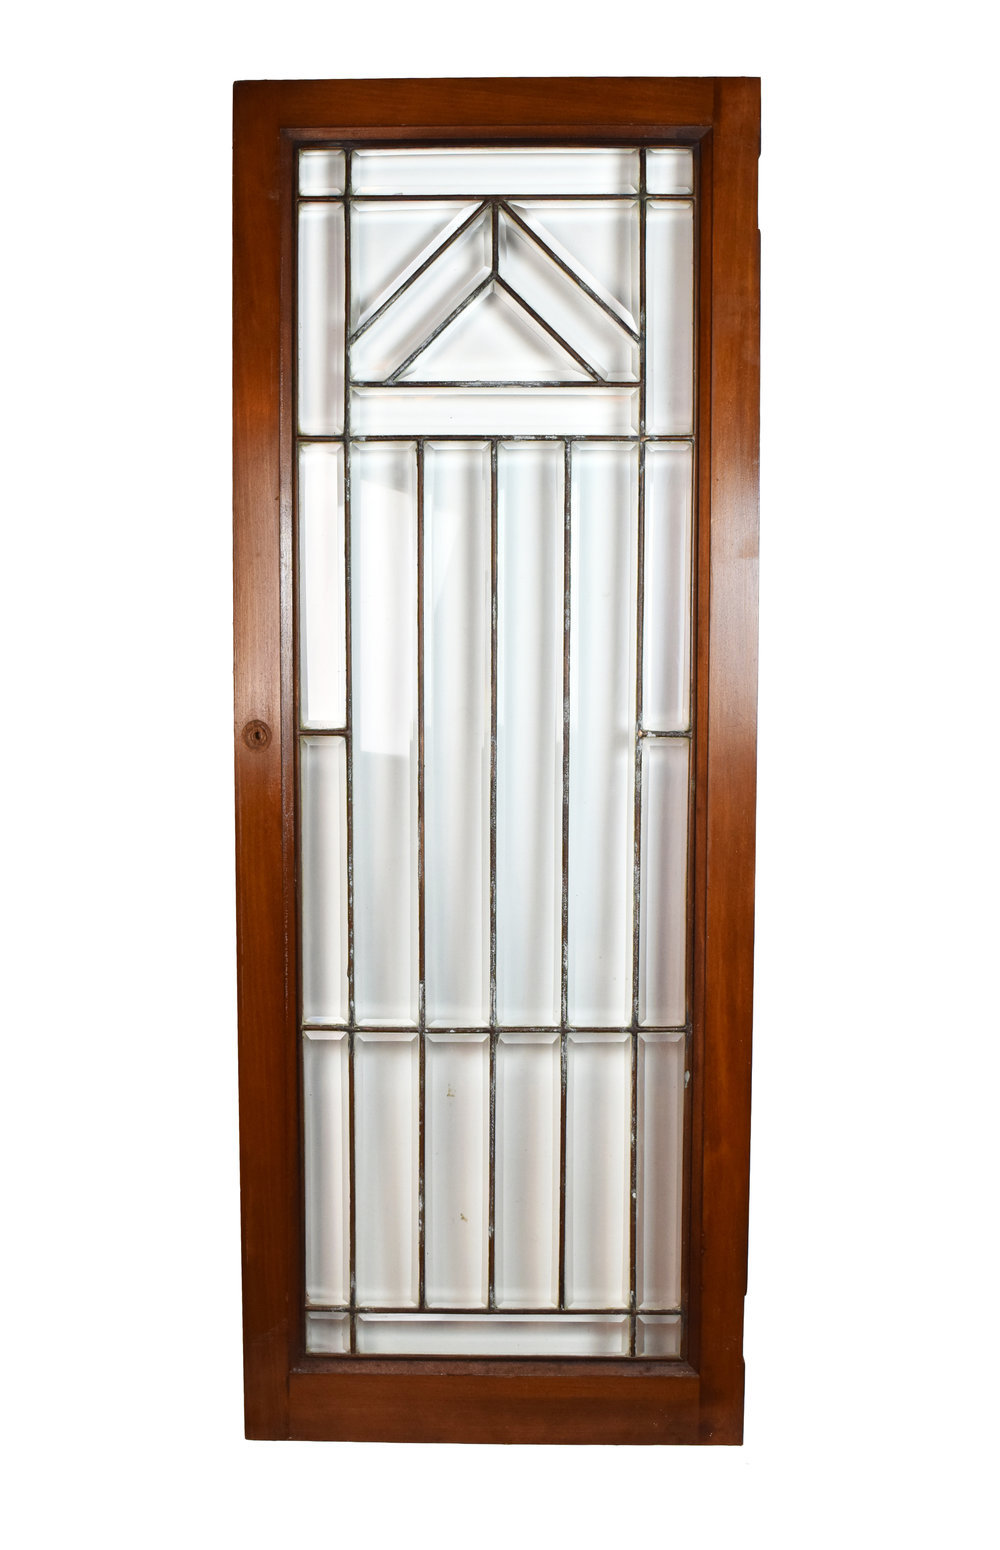 47208-arts&crafts-beveled-cabinet-door-main2.jpg